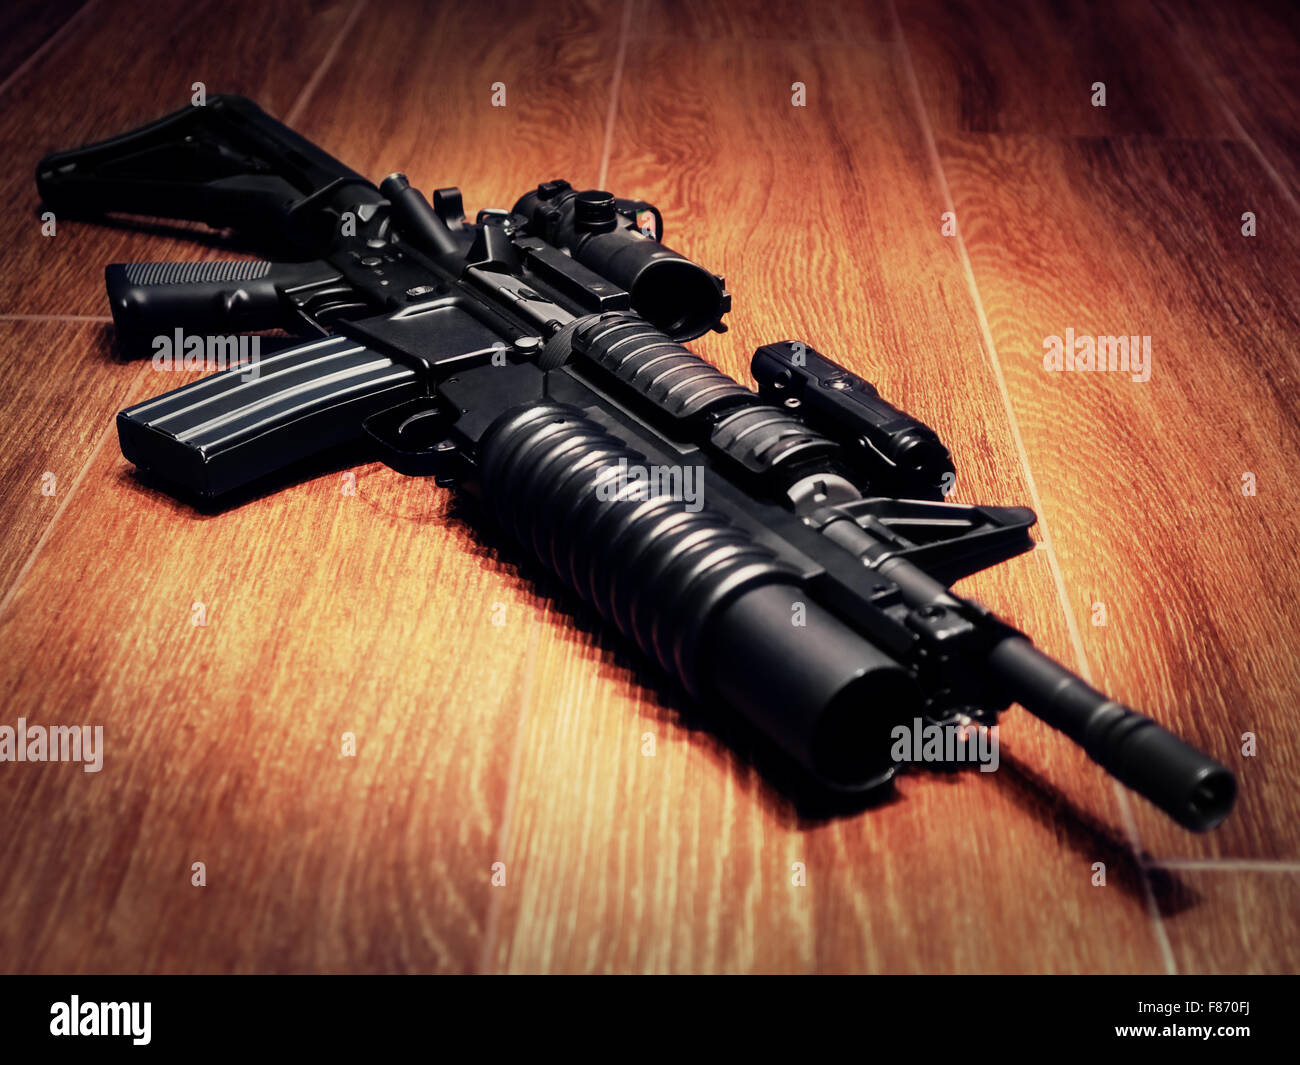 The Black Rifle with grenade launcher on the floor, selective focus - Stock Image